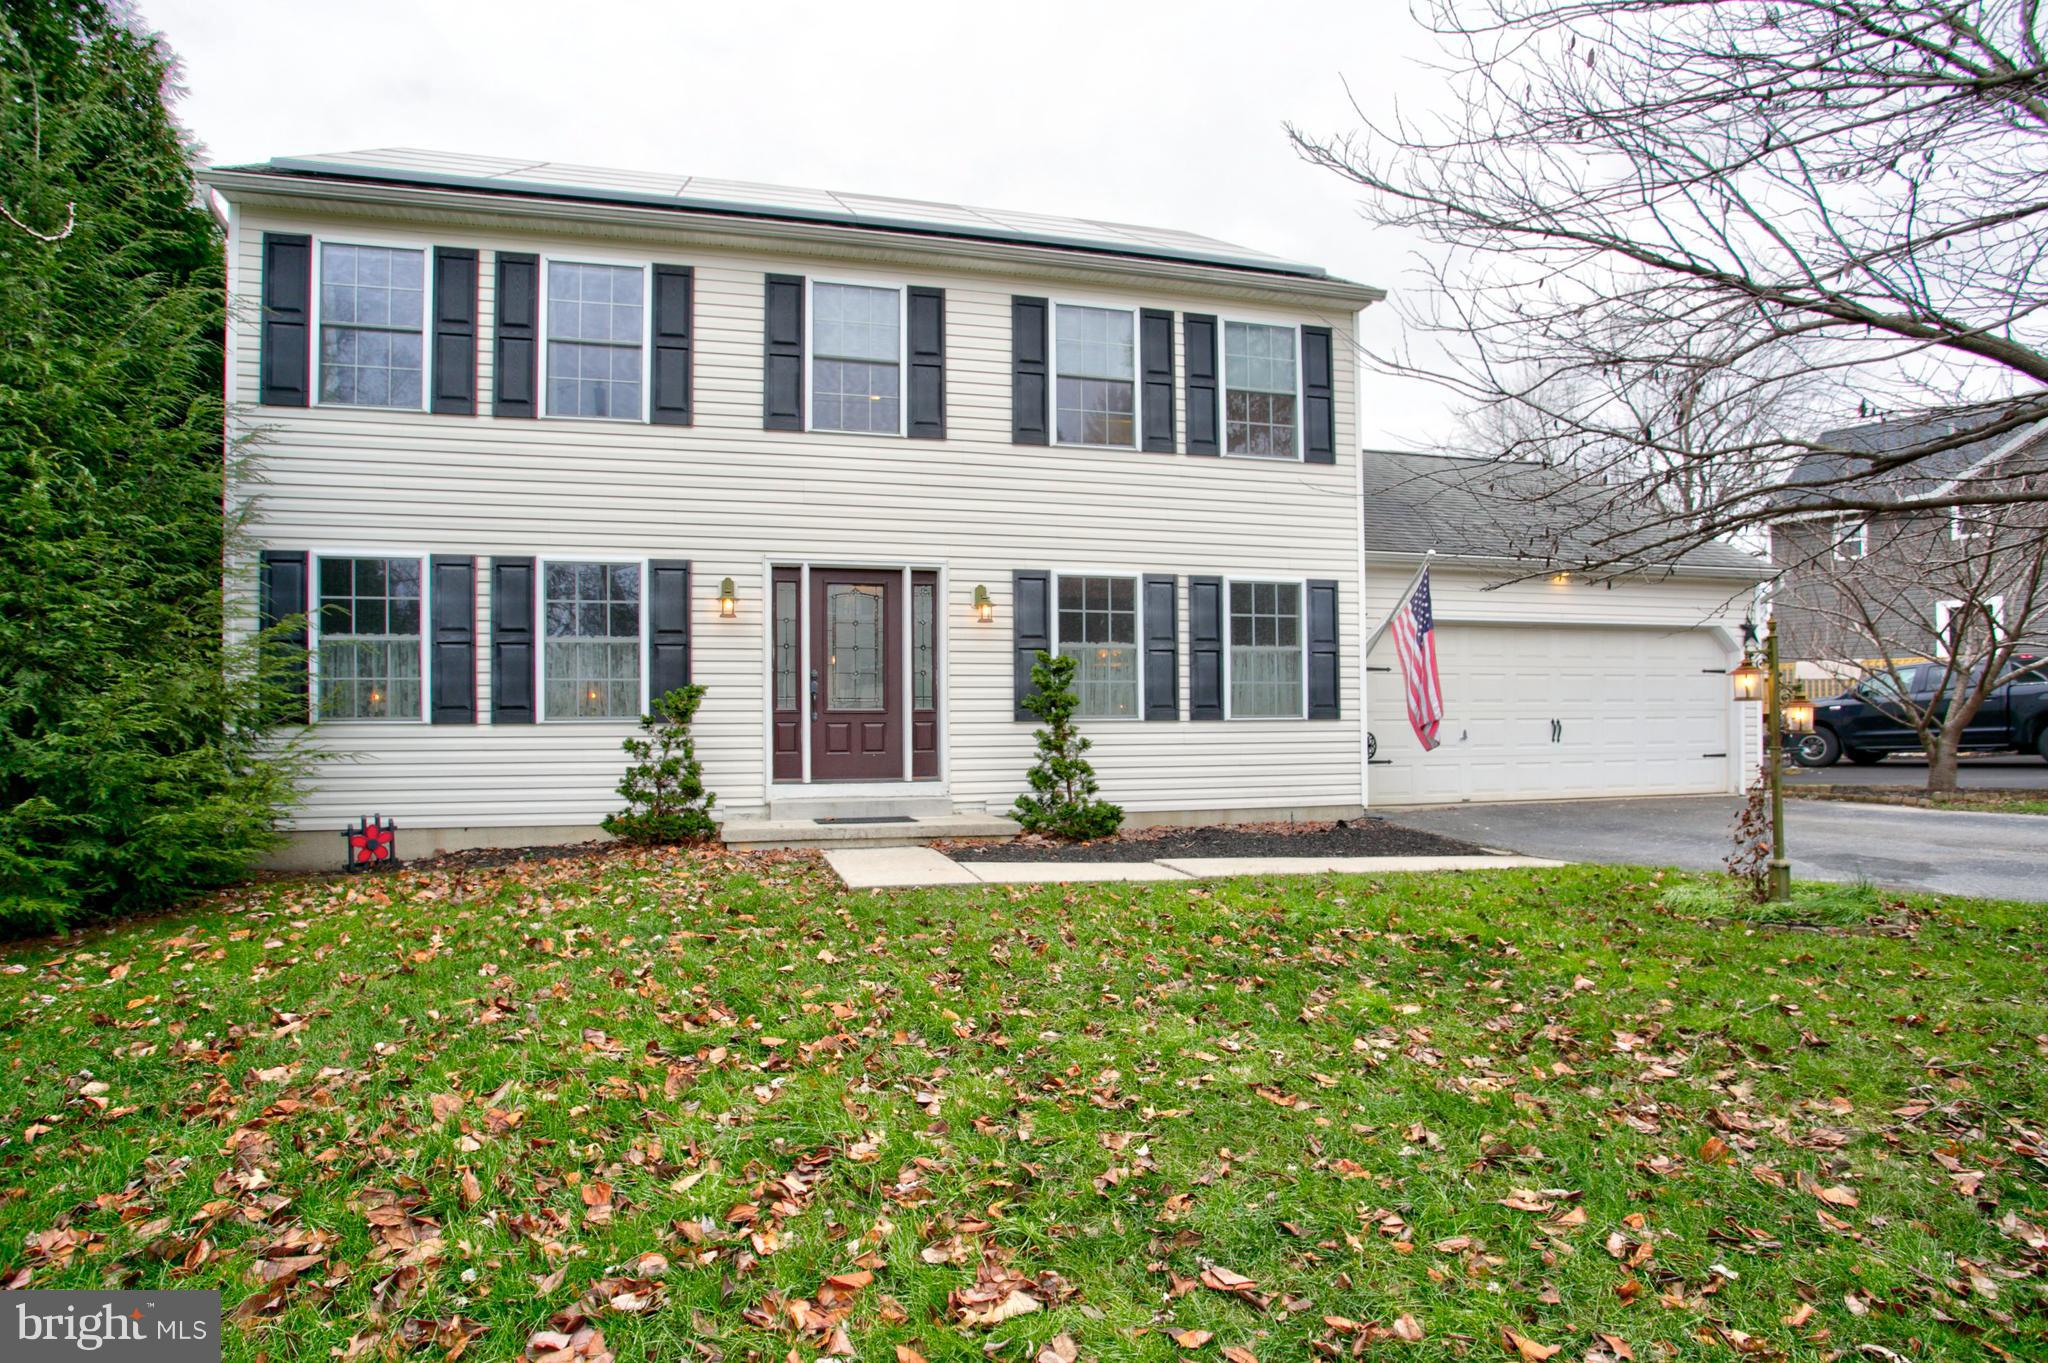 412 WOODHALL DRIVE, WILLOW STREET, PA 17584